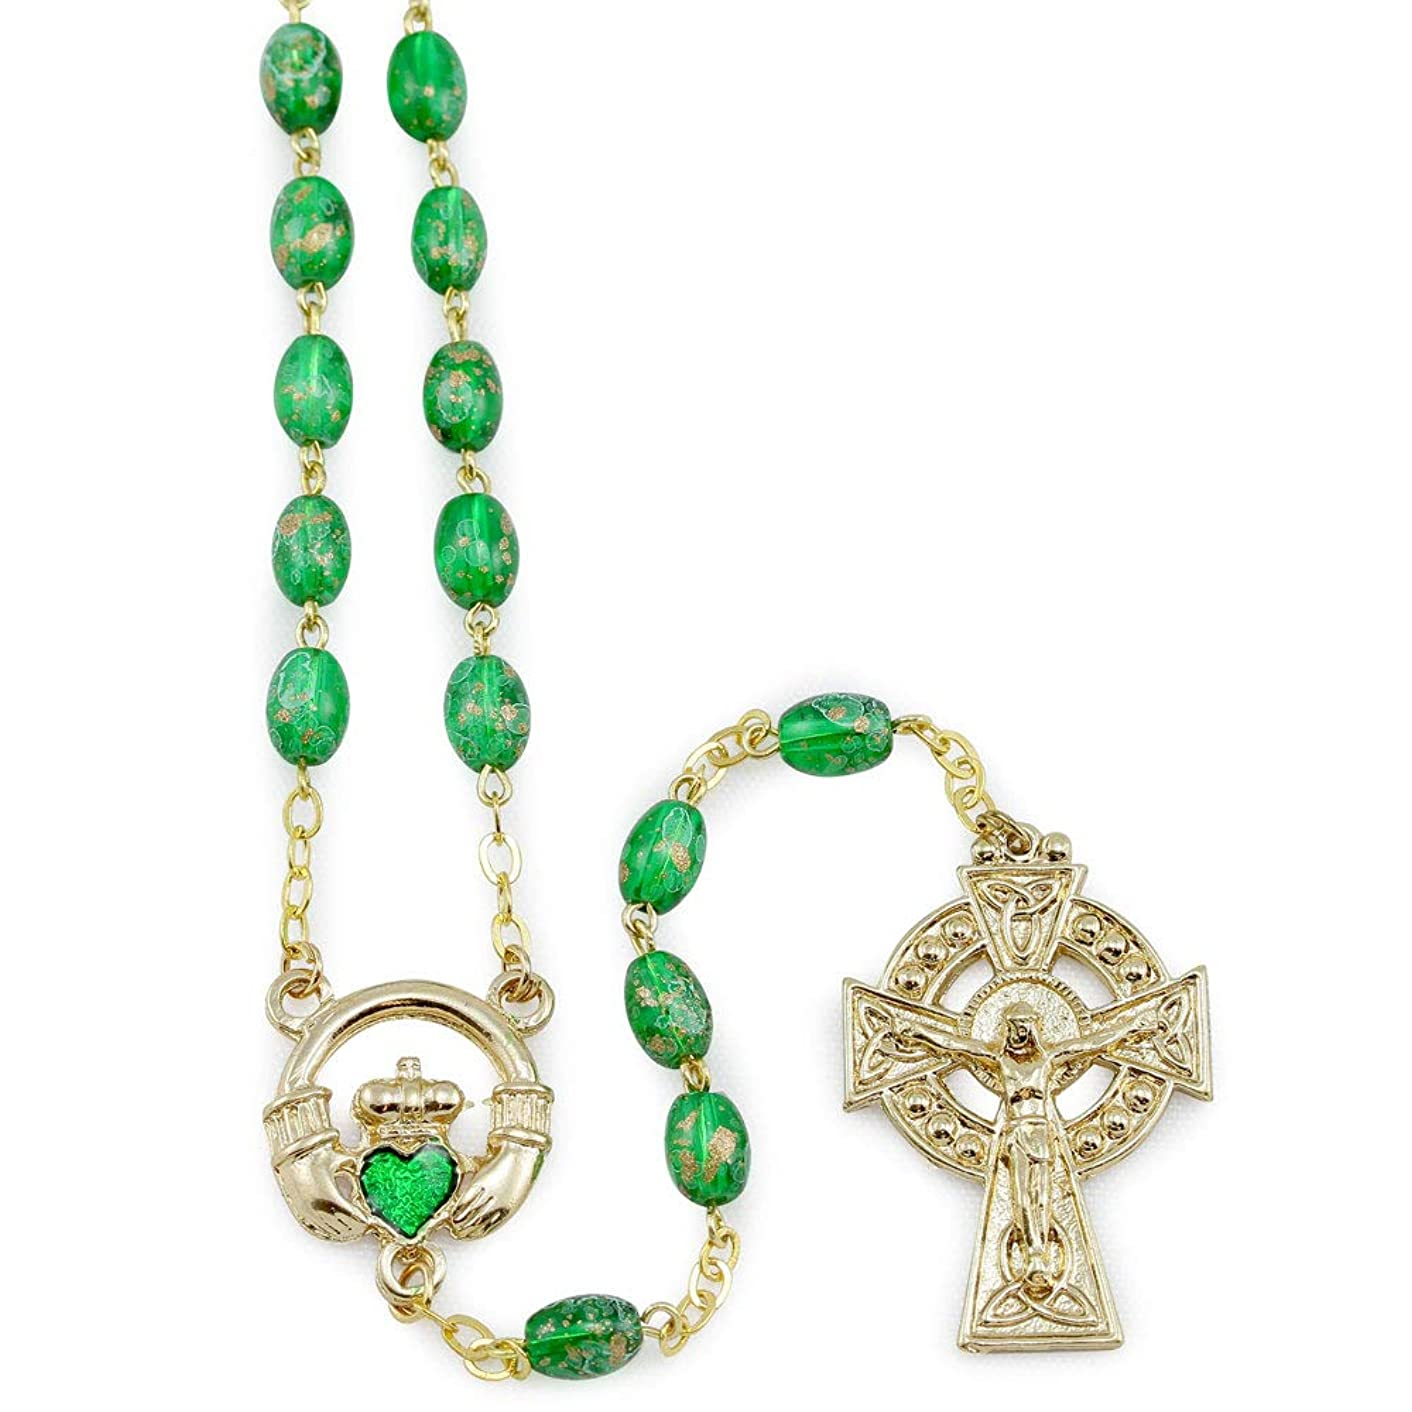 Irish Claddagh Rosary with Green Oval Beads and Celetic Cross